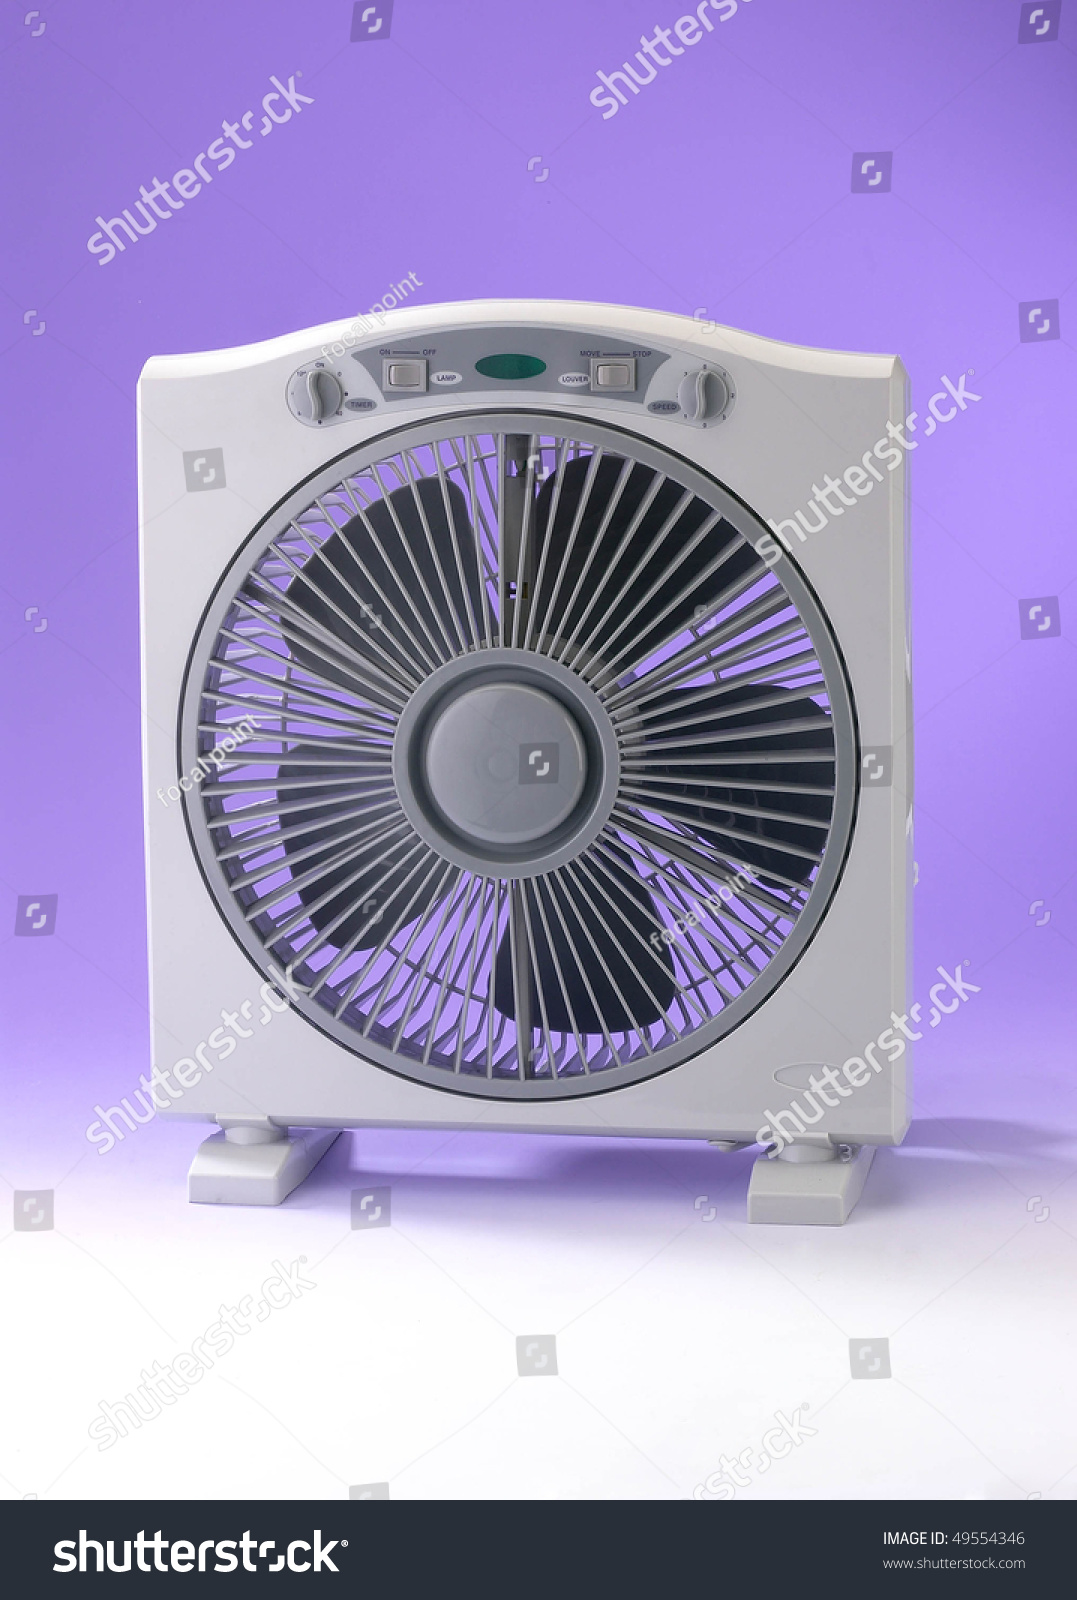 Modern Desk Fan : Modern desk cooling fan over white and purple background